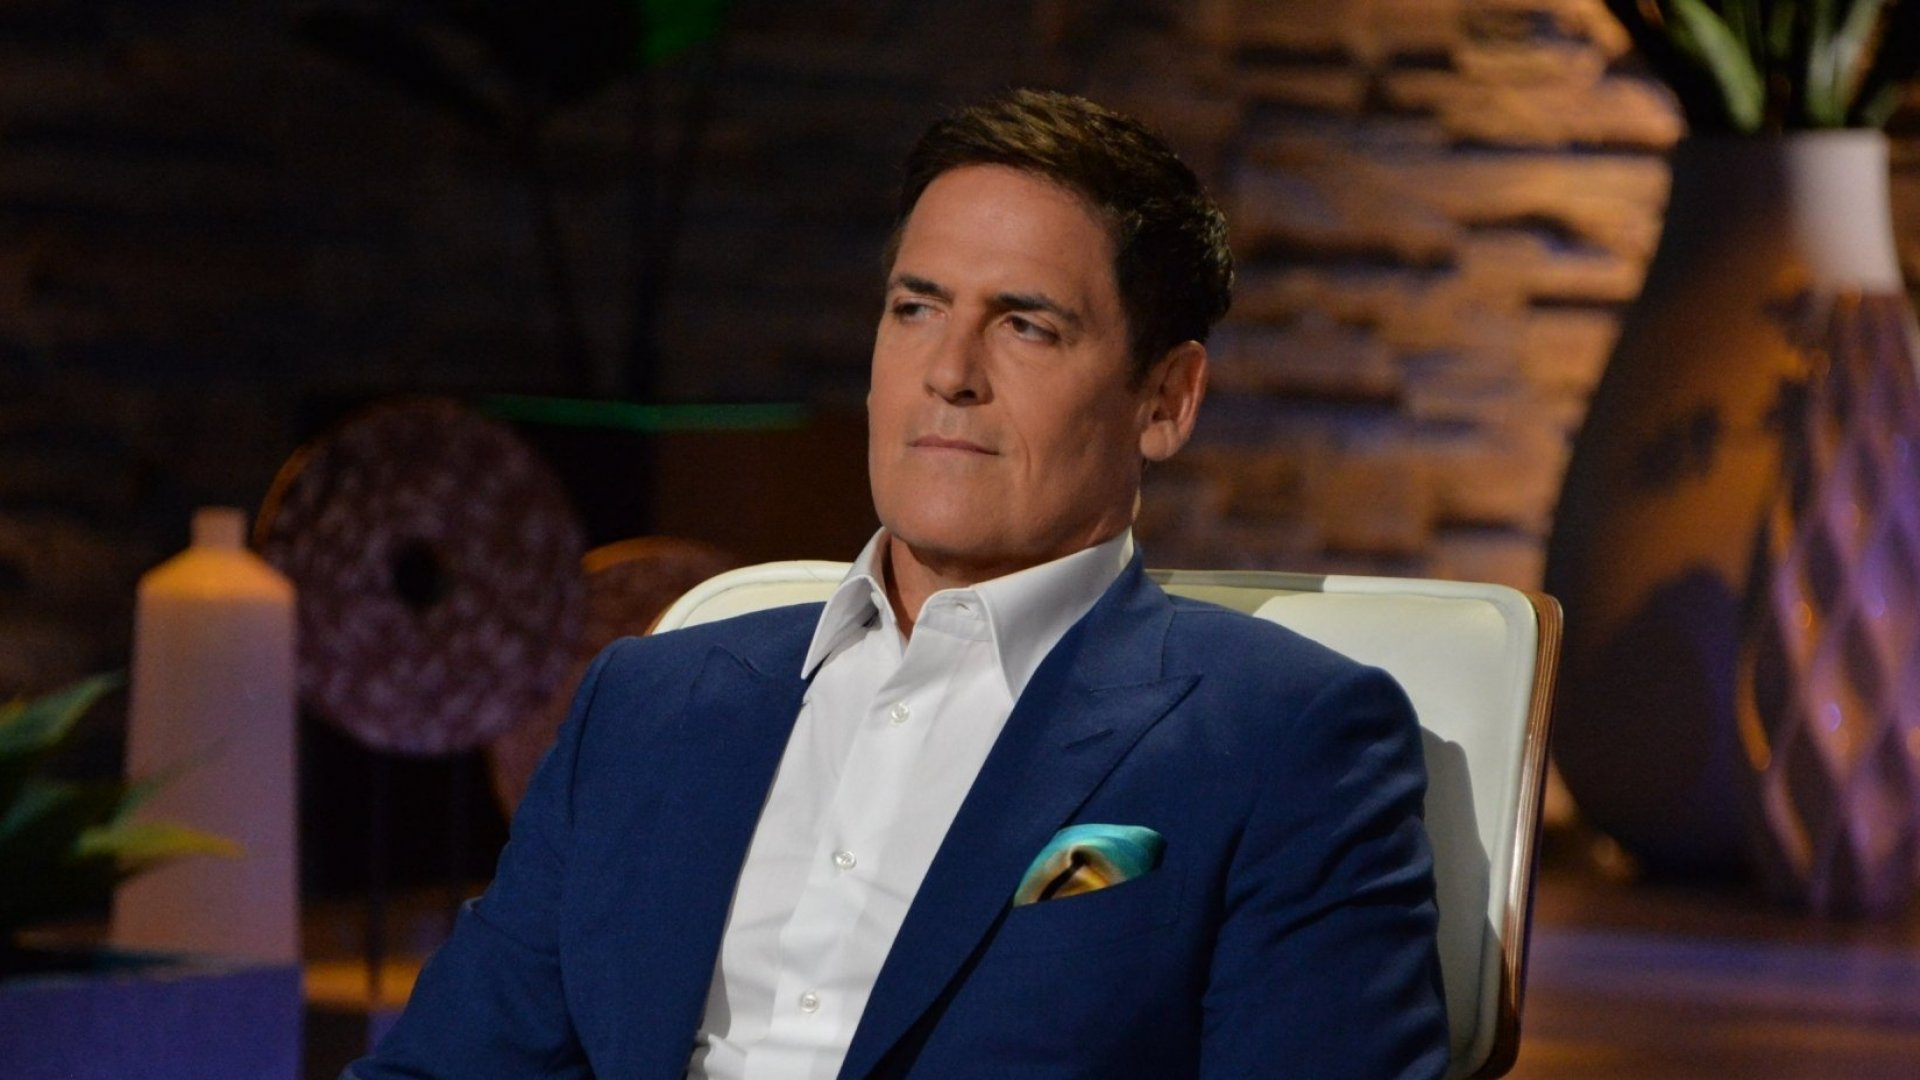 Mark Cuban Gives Millennial Entrepreneur 1 Critical Piece of Life-Changing Advice for Success